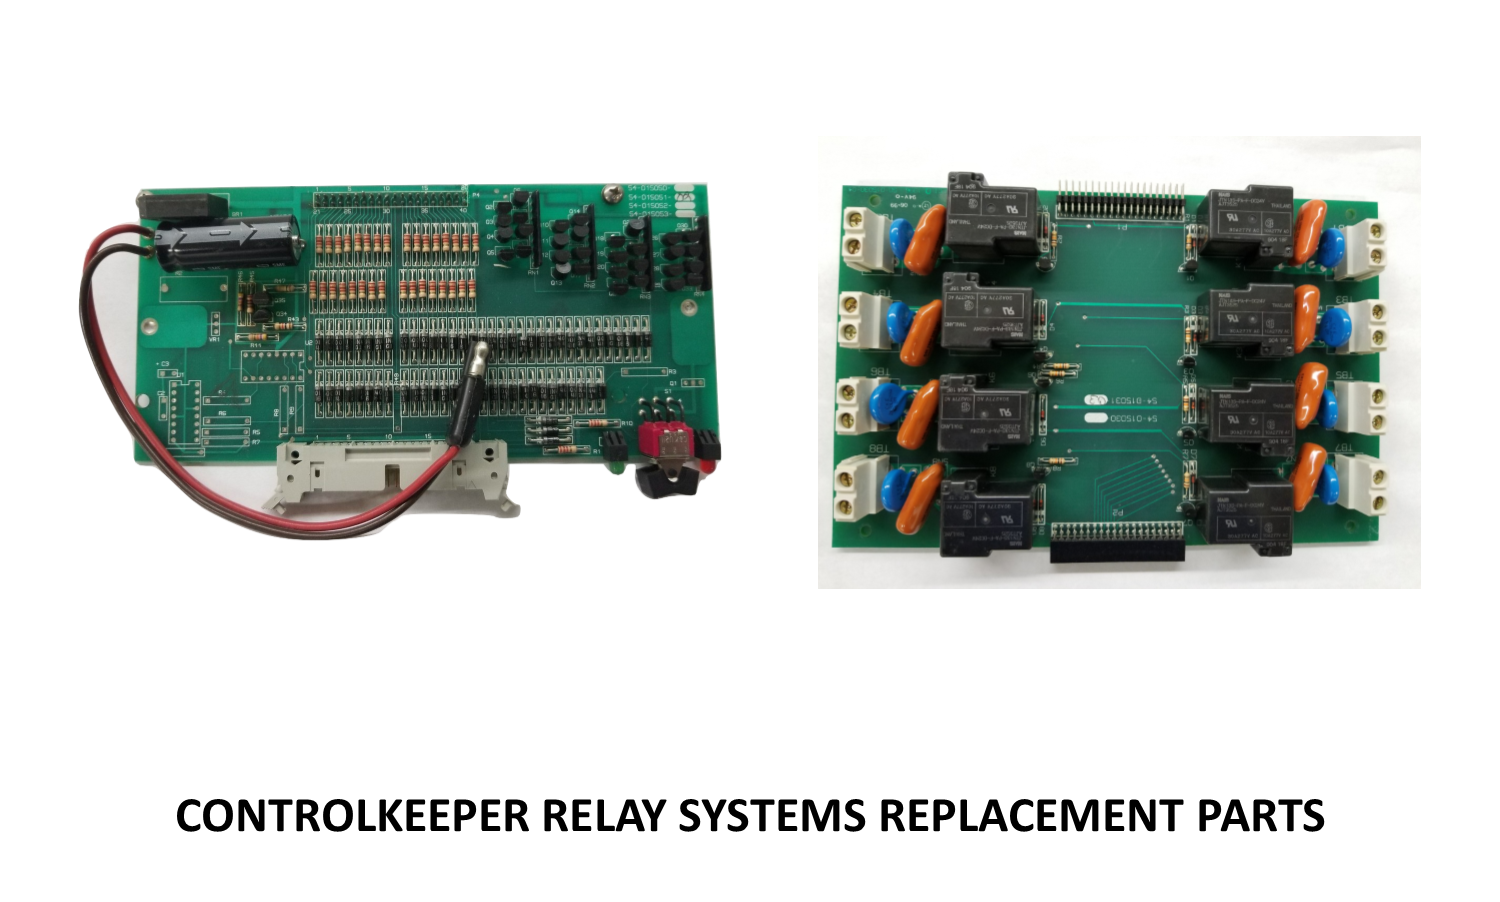 ControlKeeper Relay Systems Replacement Parts